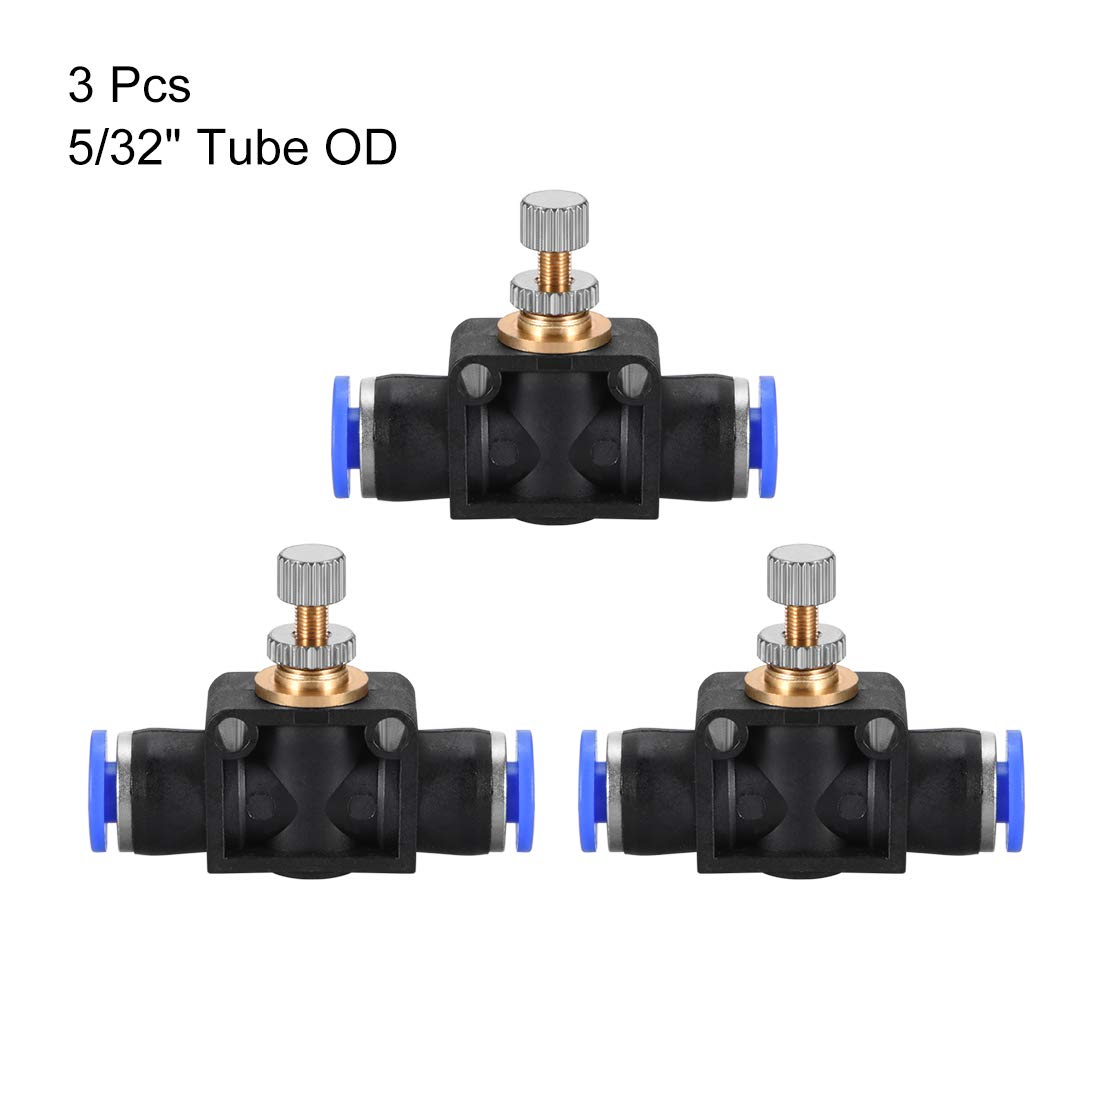 uxcell 8mm OD Pneumatic Air Flow Control Valve with Push-to-Connect Fitting,Straight Air Pneumatic Flow in-Line Speed Controller Valve